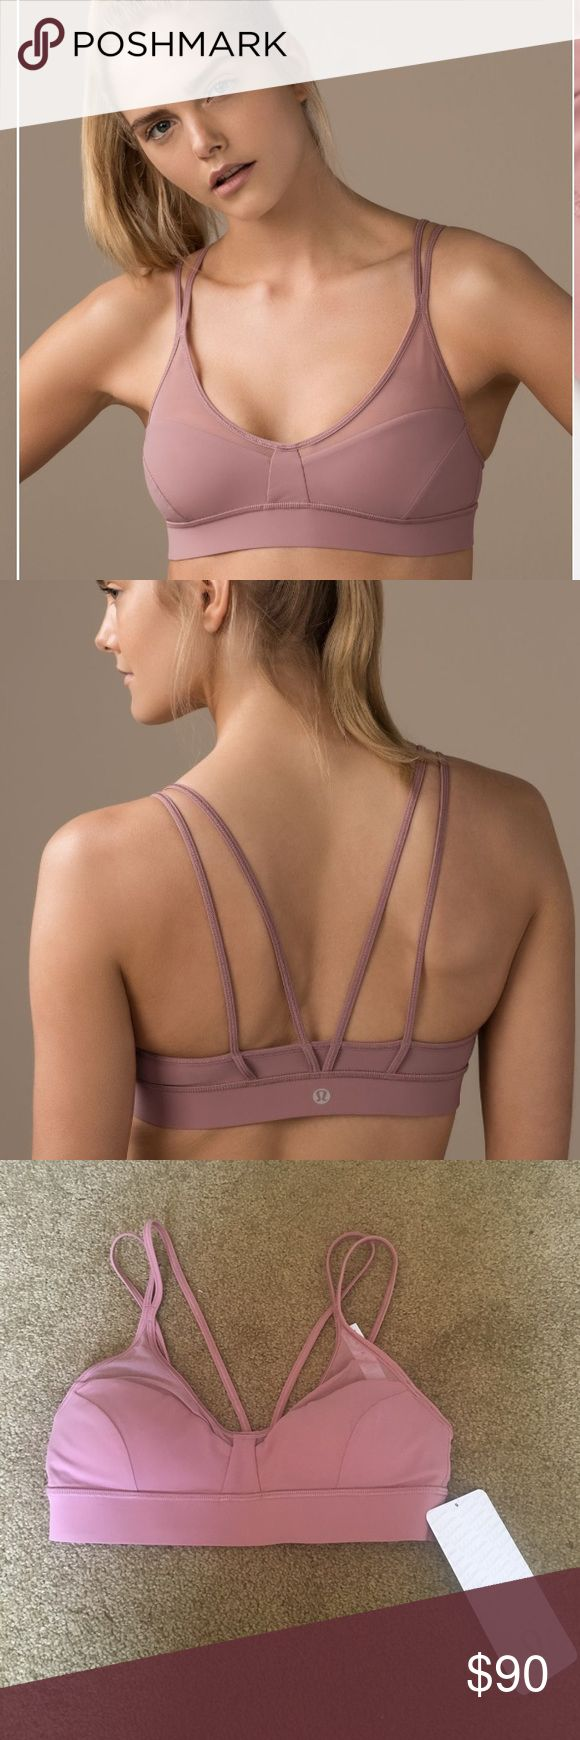 SOLD Lululemon Anew Bra in Quicksand 4 NWT. This color sold out extremely fast. It's a gorgeous dusty rose/Mauve shade. Unfortunately, this bra just doesn't work for me. I do not recommend this for large breasts. Lululemon recommends this for an A/B cup and I would agree. A size 4 bra is also recommend for a 32 band size. Band measures 12 inches. No trades and no transactions outside of this app. Stock photo shows true color. Priced to make room for offers and give me back what I paid…